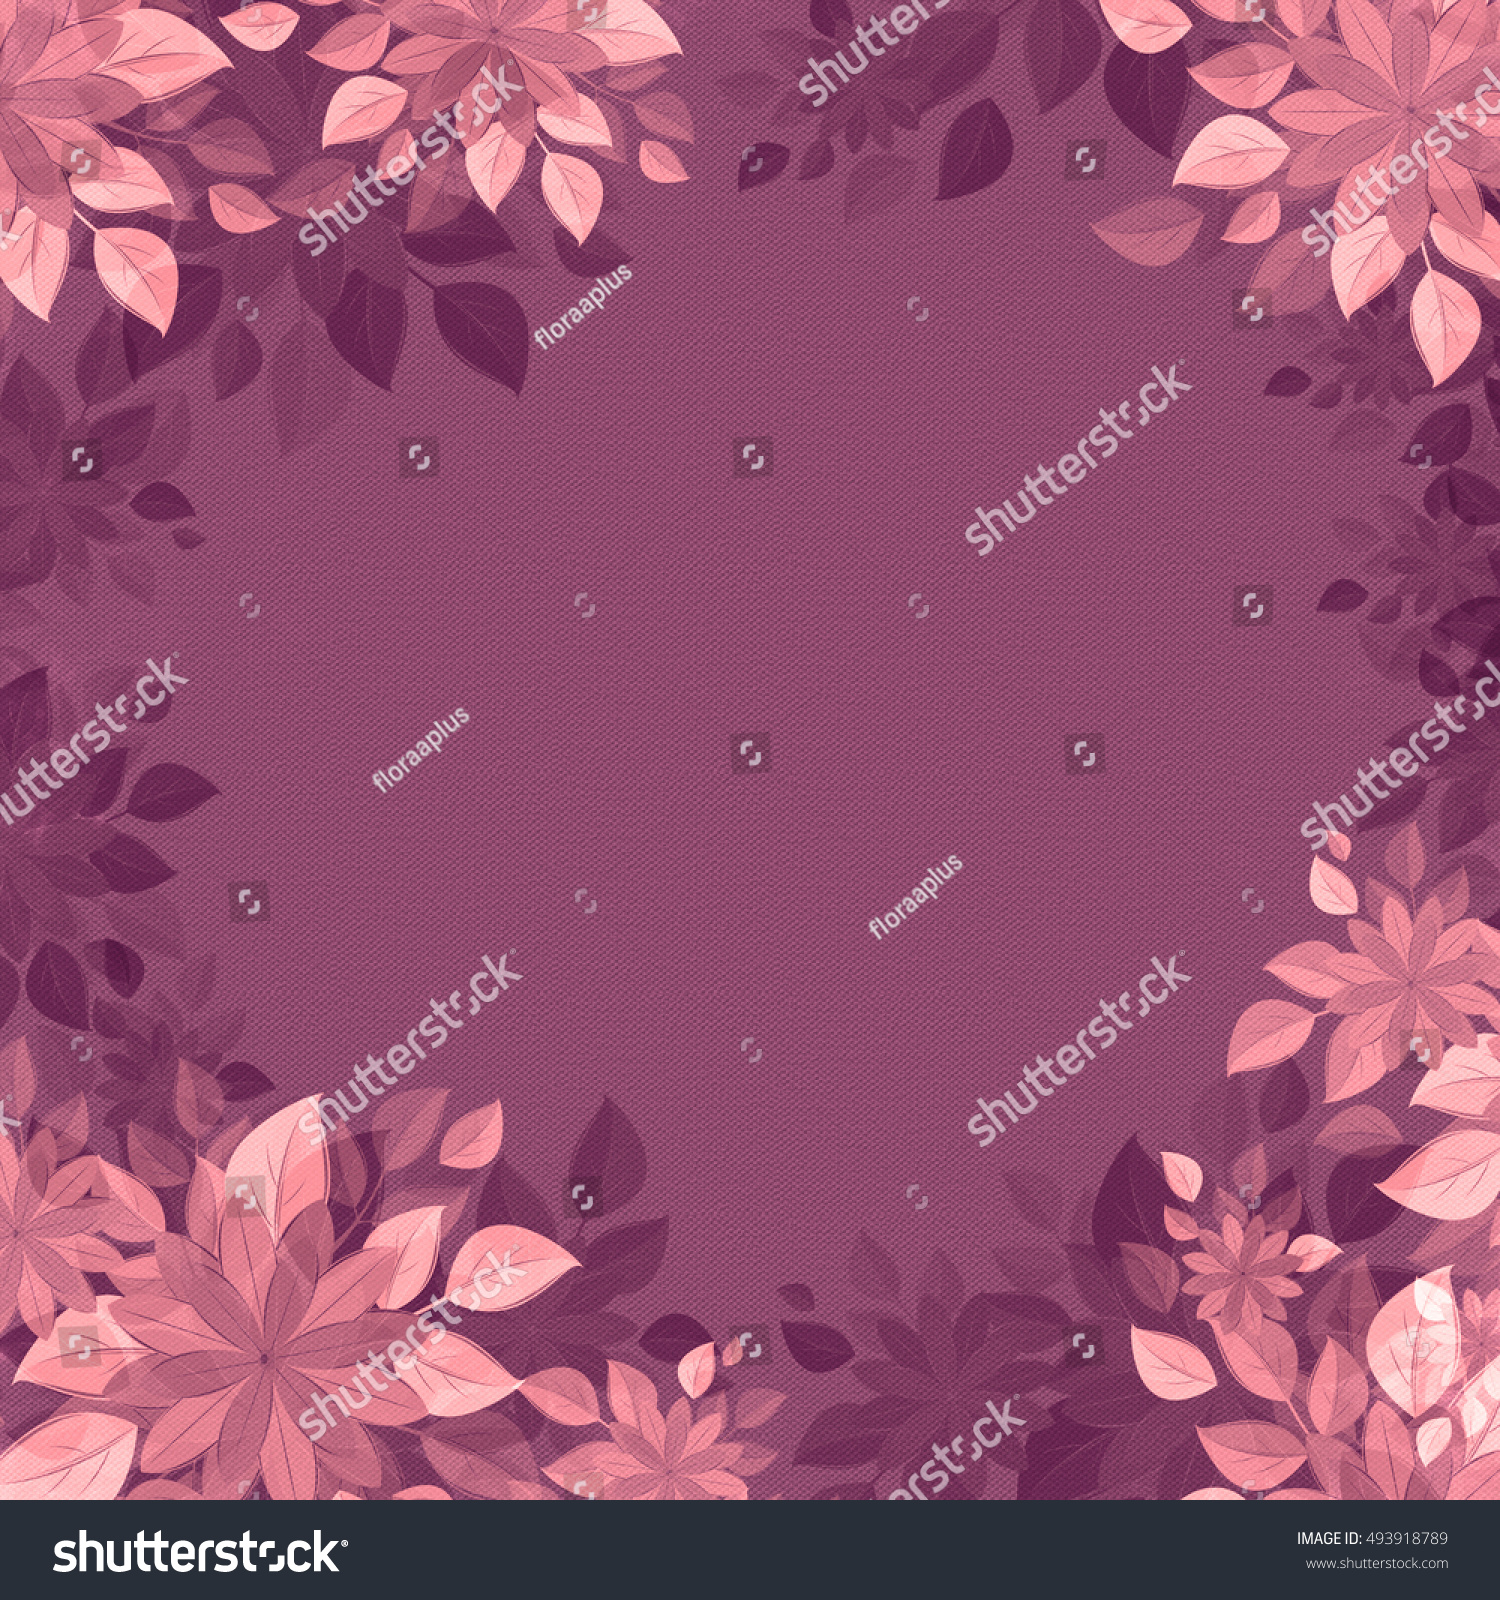 stock-photo-vintage-wall-paper-flower-vi